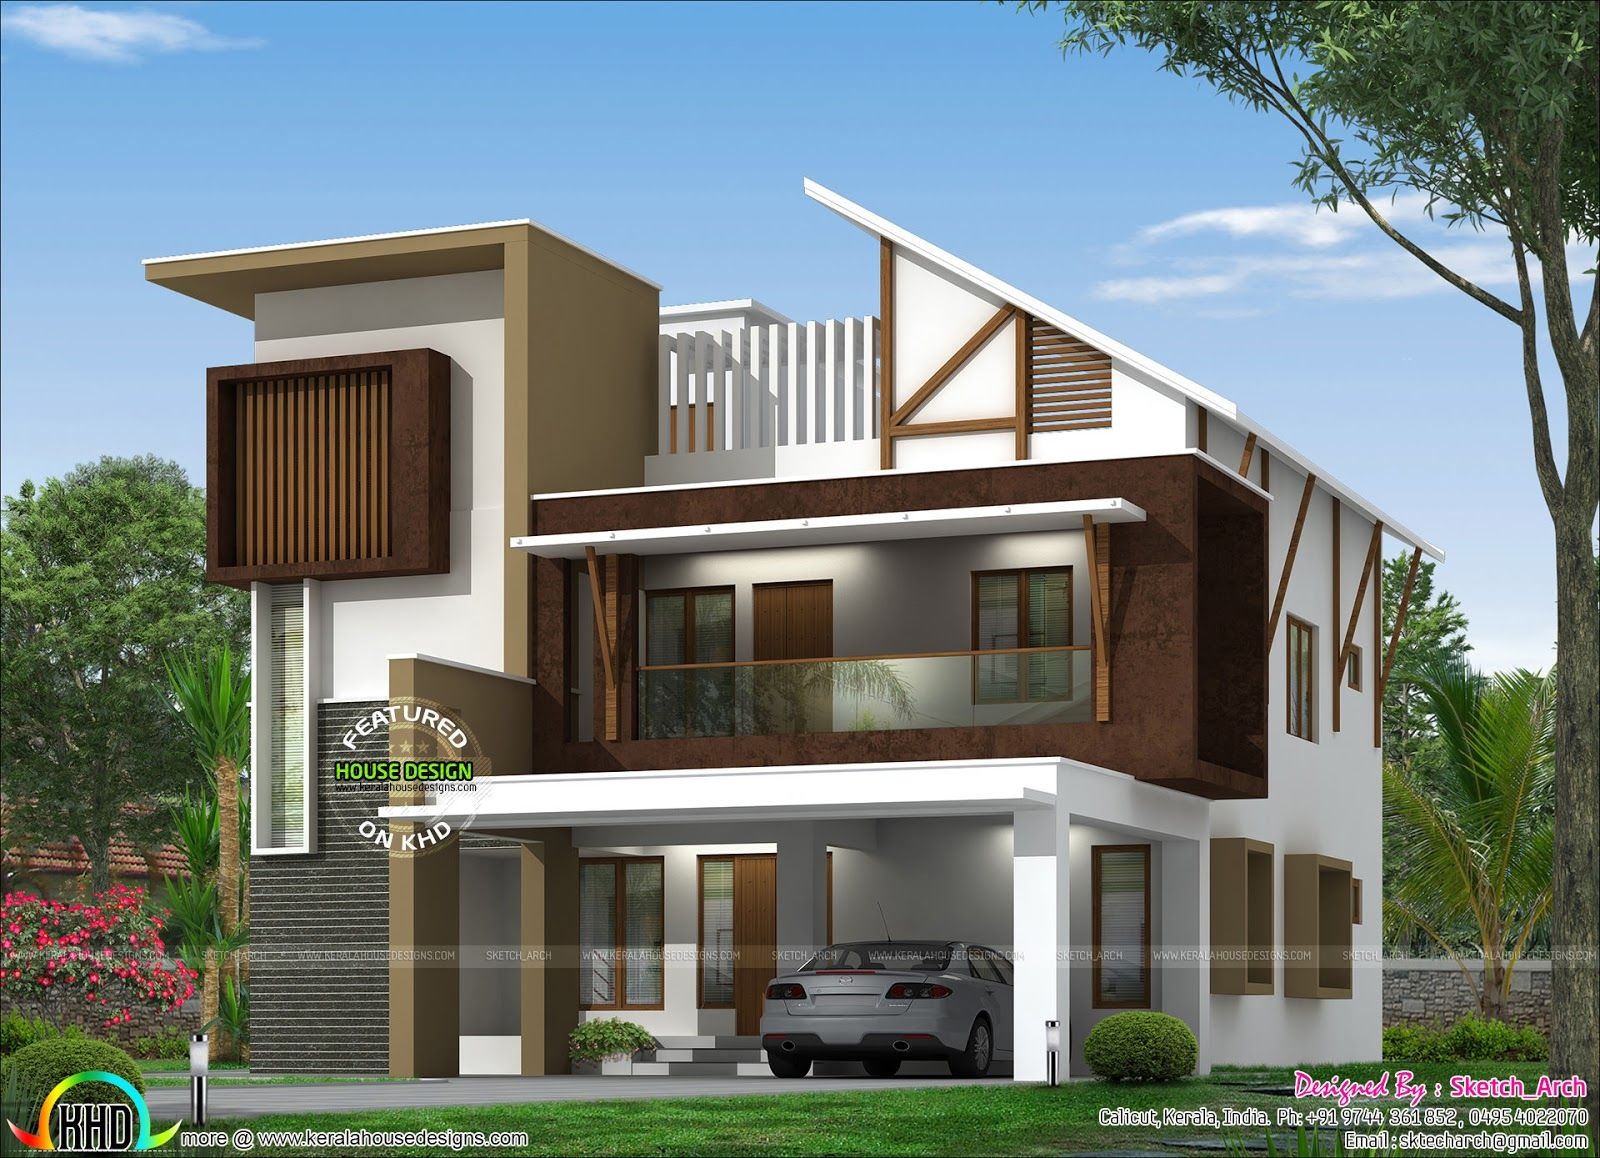 4 Bedroom Curved Roof Mix Contemporary Home Part - 34: 2900 Square Feet, 4 Bedroom Modern Mix Box Type Home Plan By Sketch_Arch  From Calicut, Kerala.